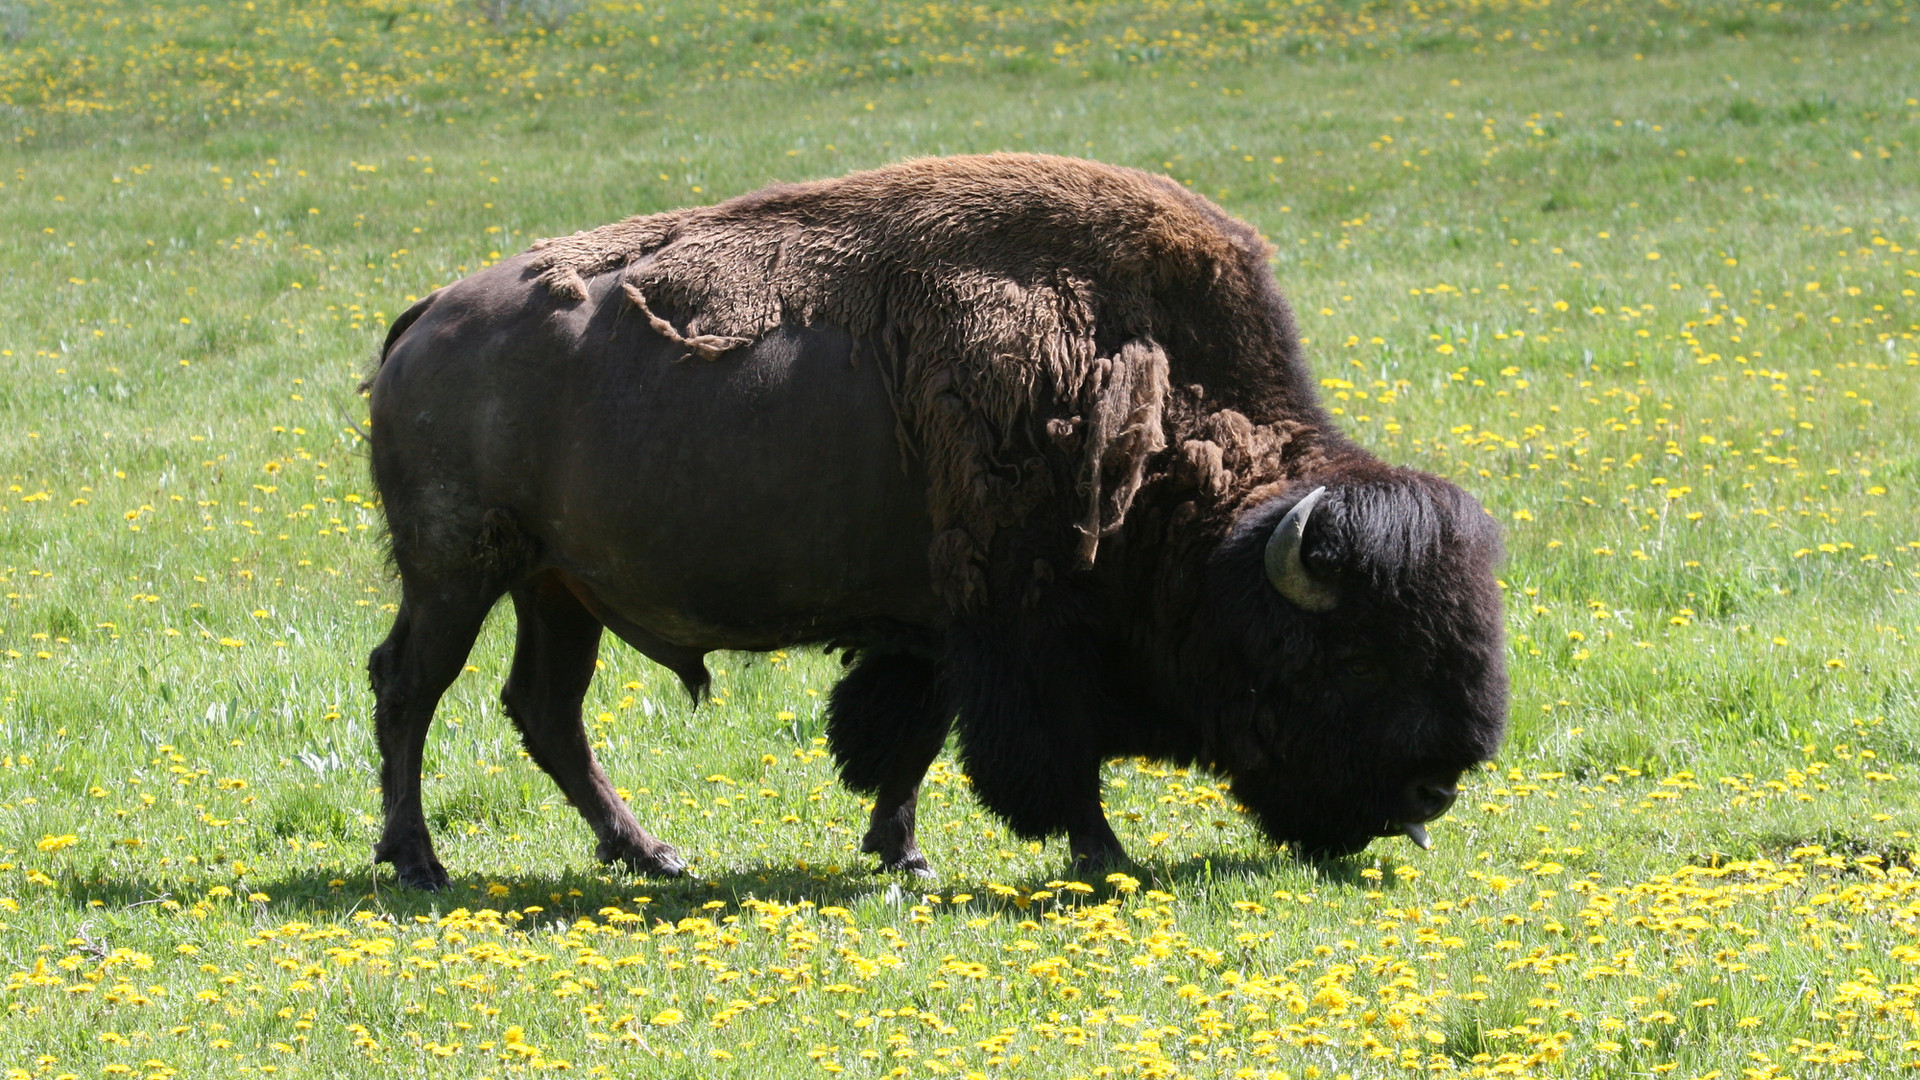 yellowstone-national-park-tour-bison.JPG